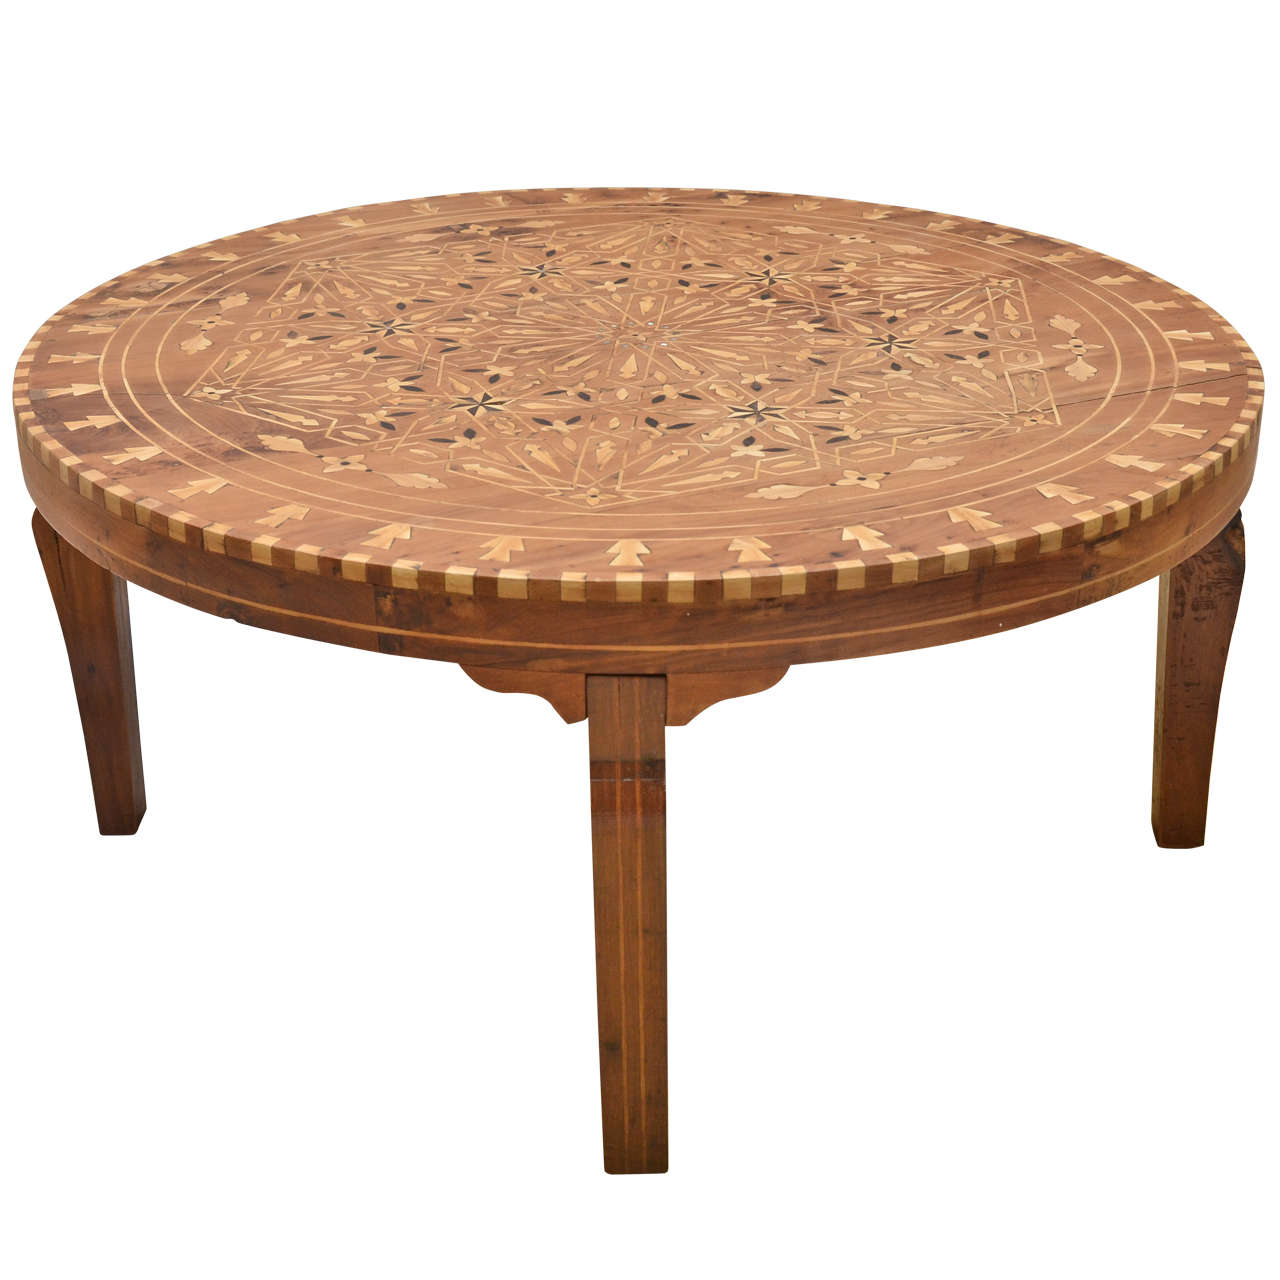 Circular Inlaid Cedar Indian Coffee Table At 1stdibs